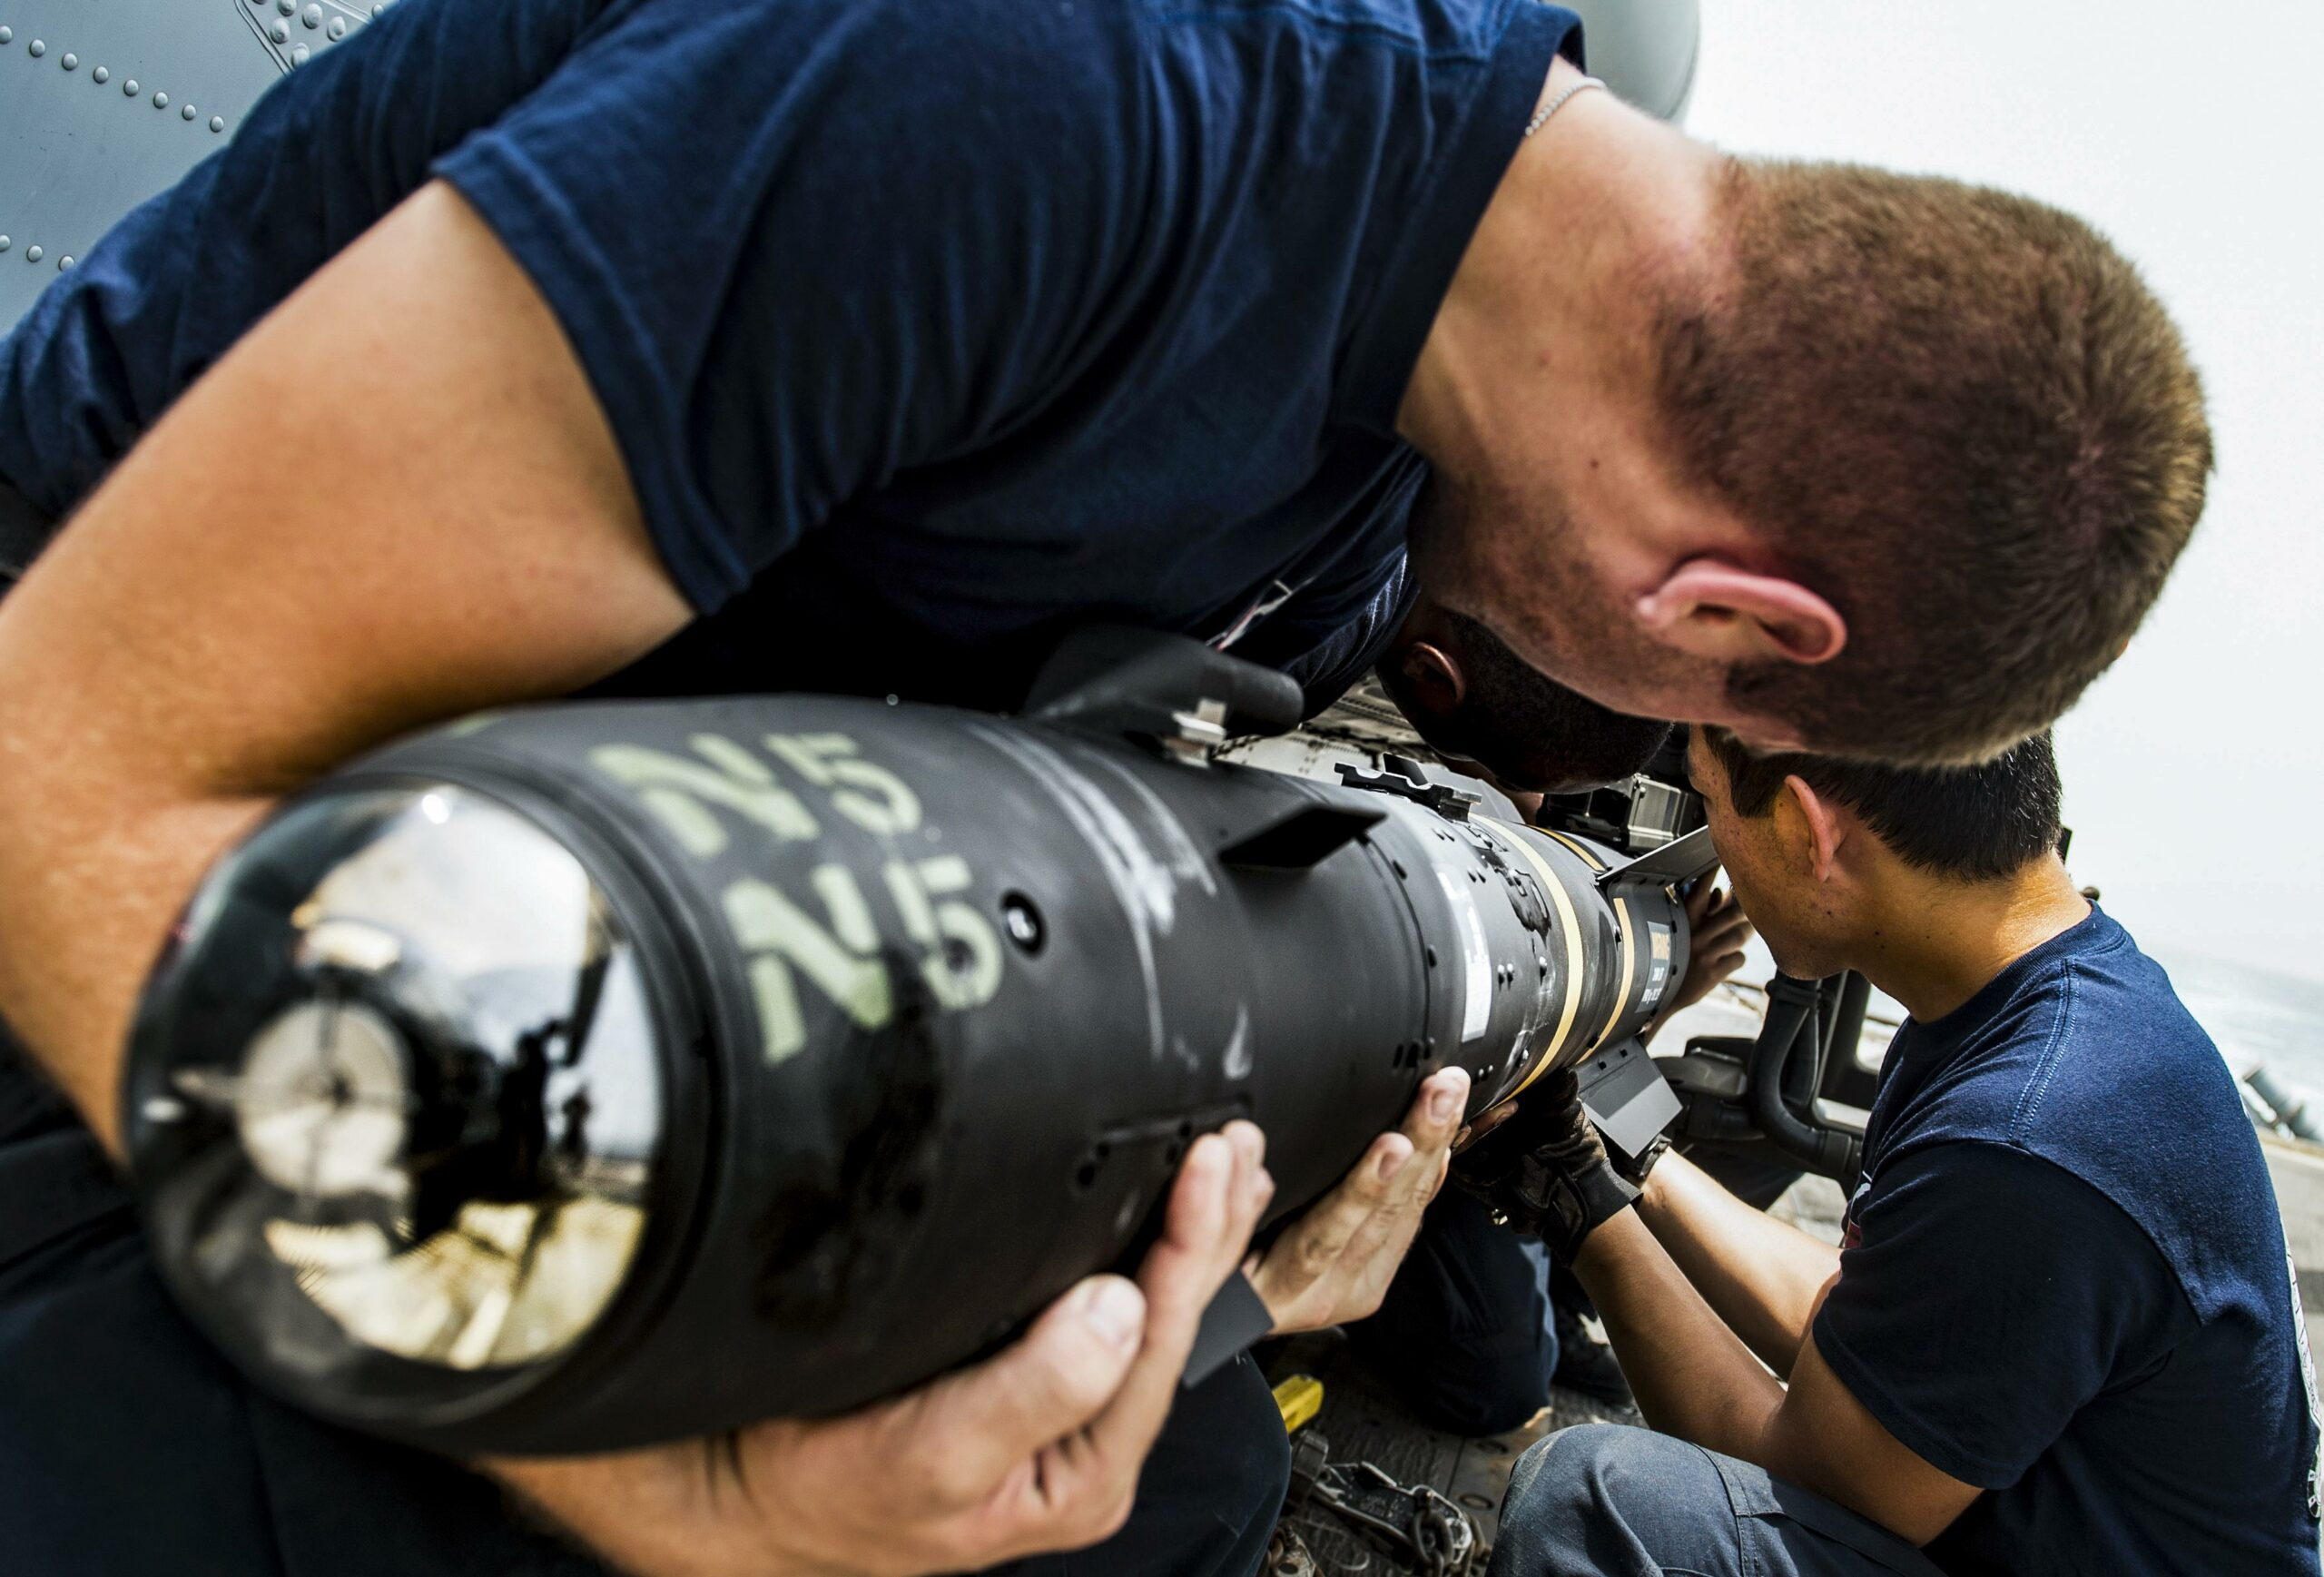 Sailors load an AGM-114 Hellfire missile onto an MH-60R Seahawk helicopter